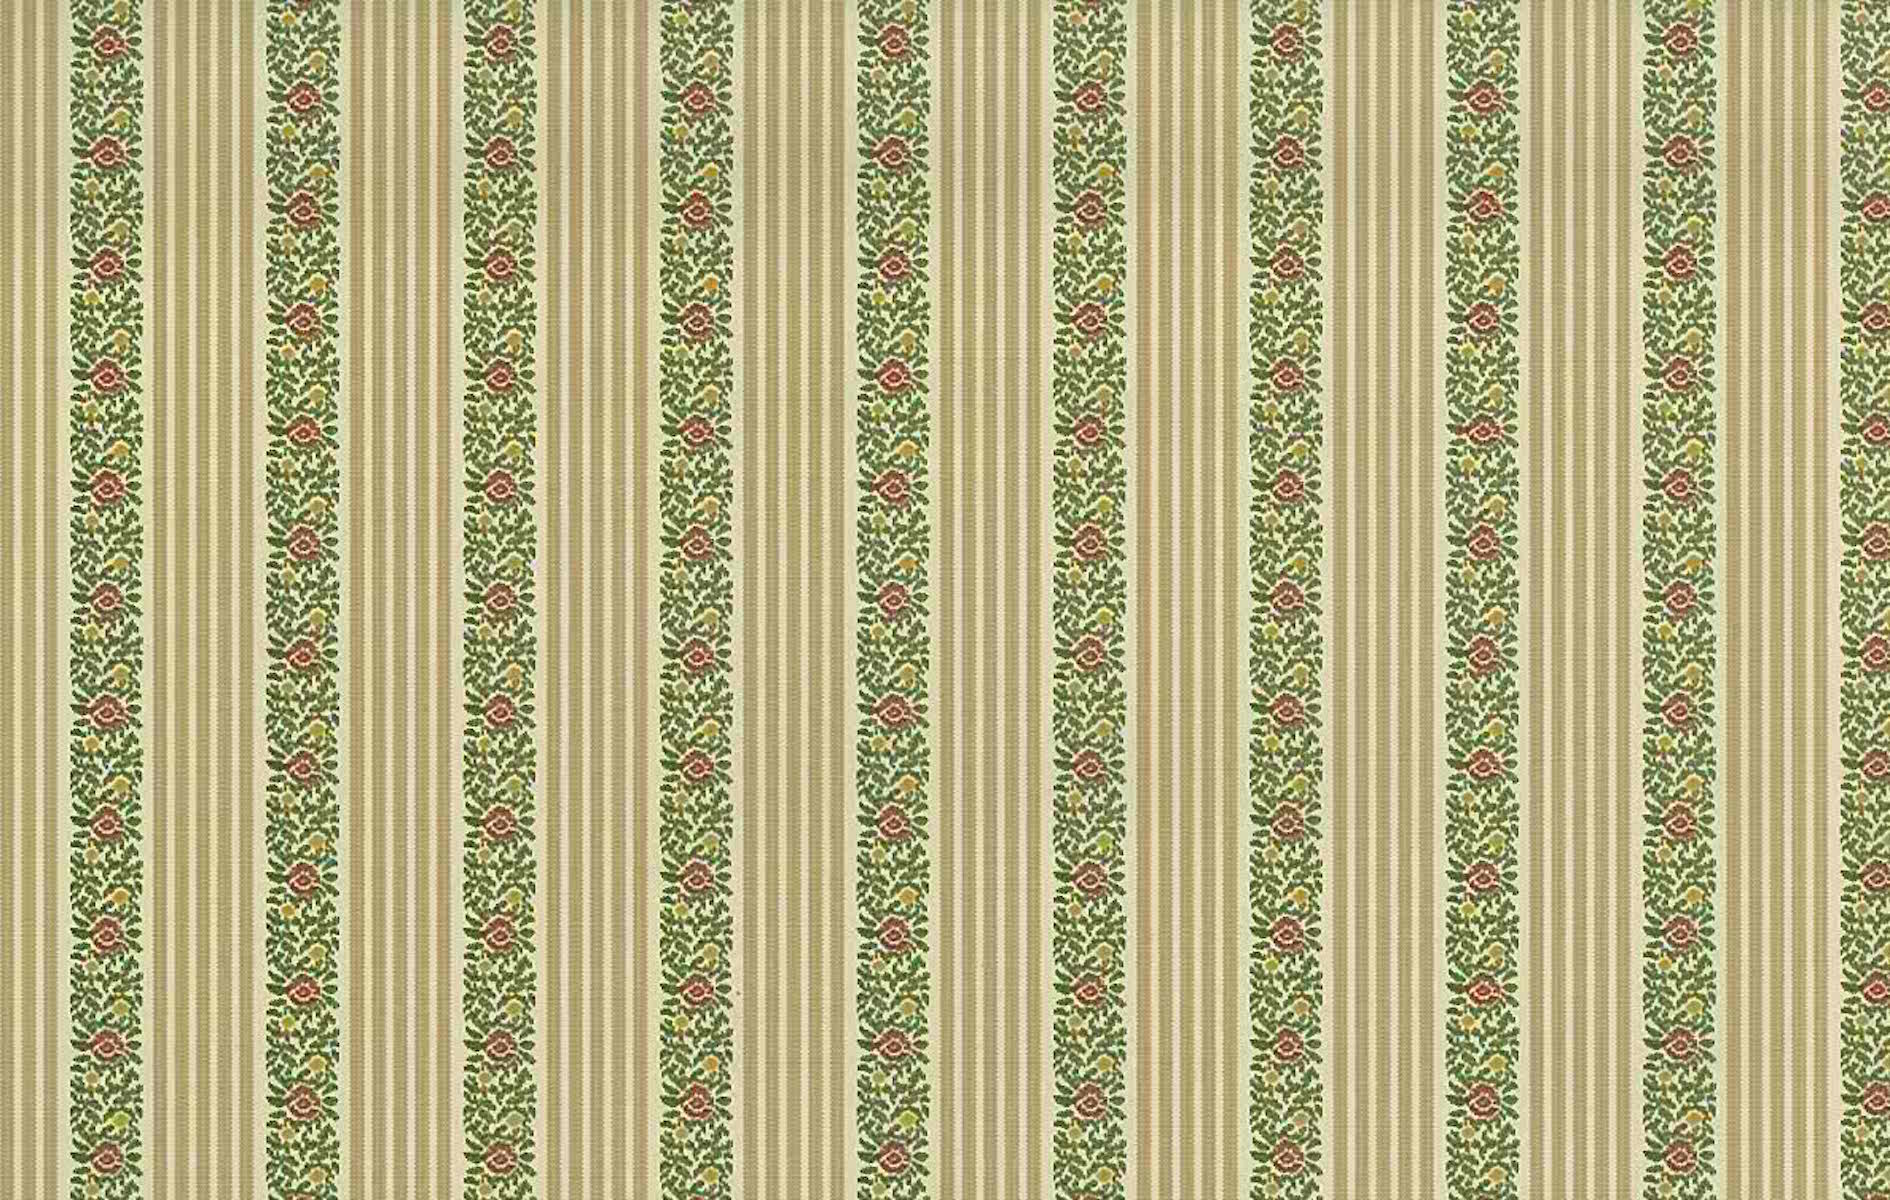 Striped Floral Vintage Wallpaper Beige Cream Green JB0758 D Rs